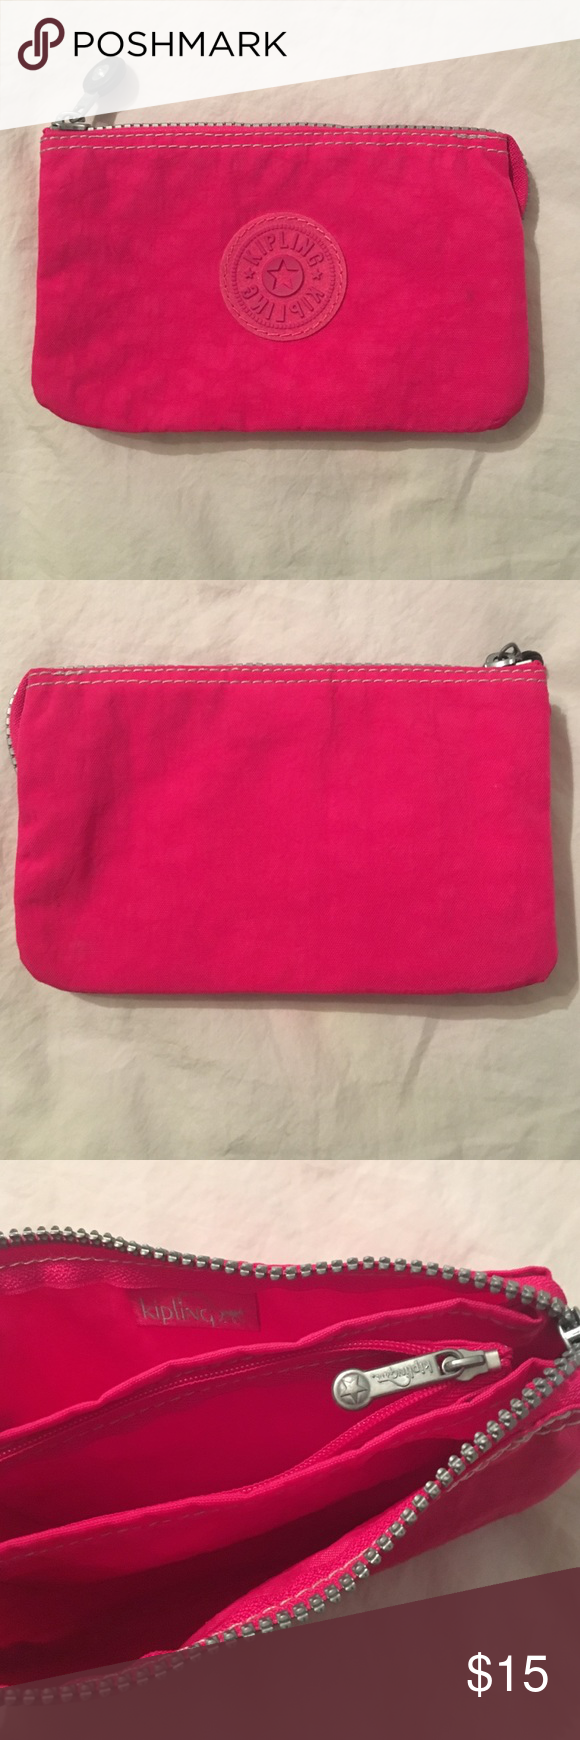 Kipling Zipper Wallet Kipling wallet with two zippers and 3 compartments. New condition. Can be used as a cosmetic case too Kipling Bags Wallets